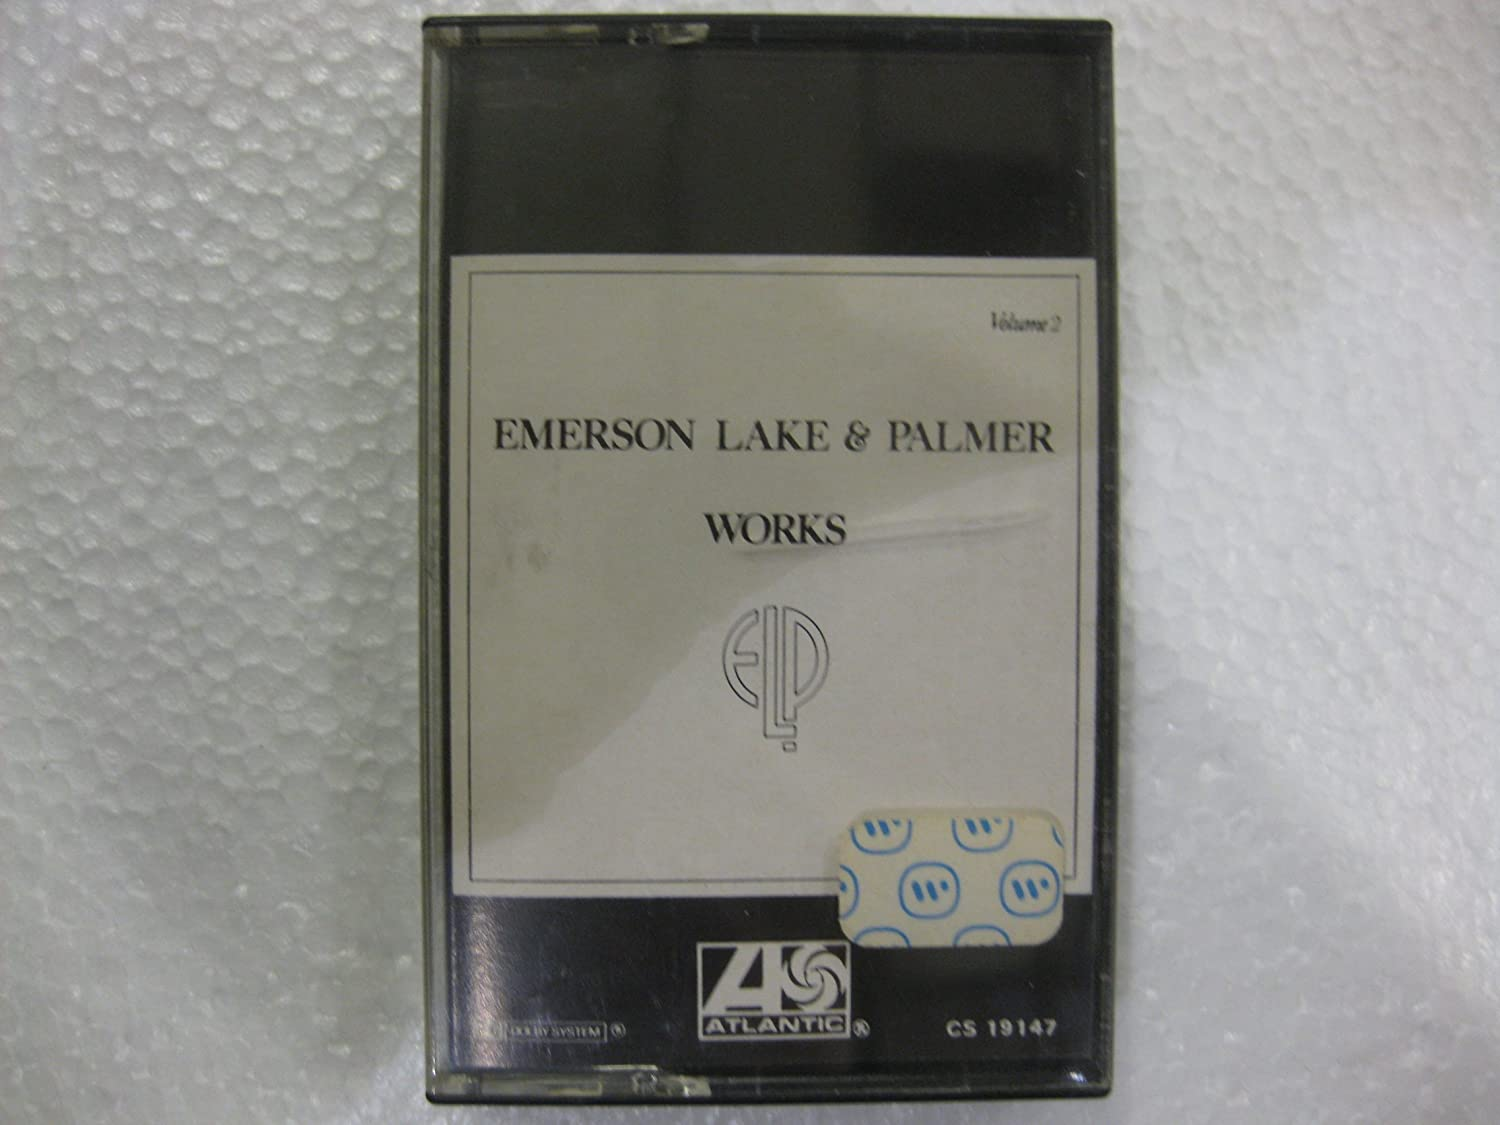 Works - 1 Vol Fixed price Super Special SALE held for sale